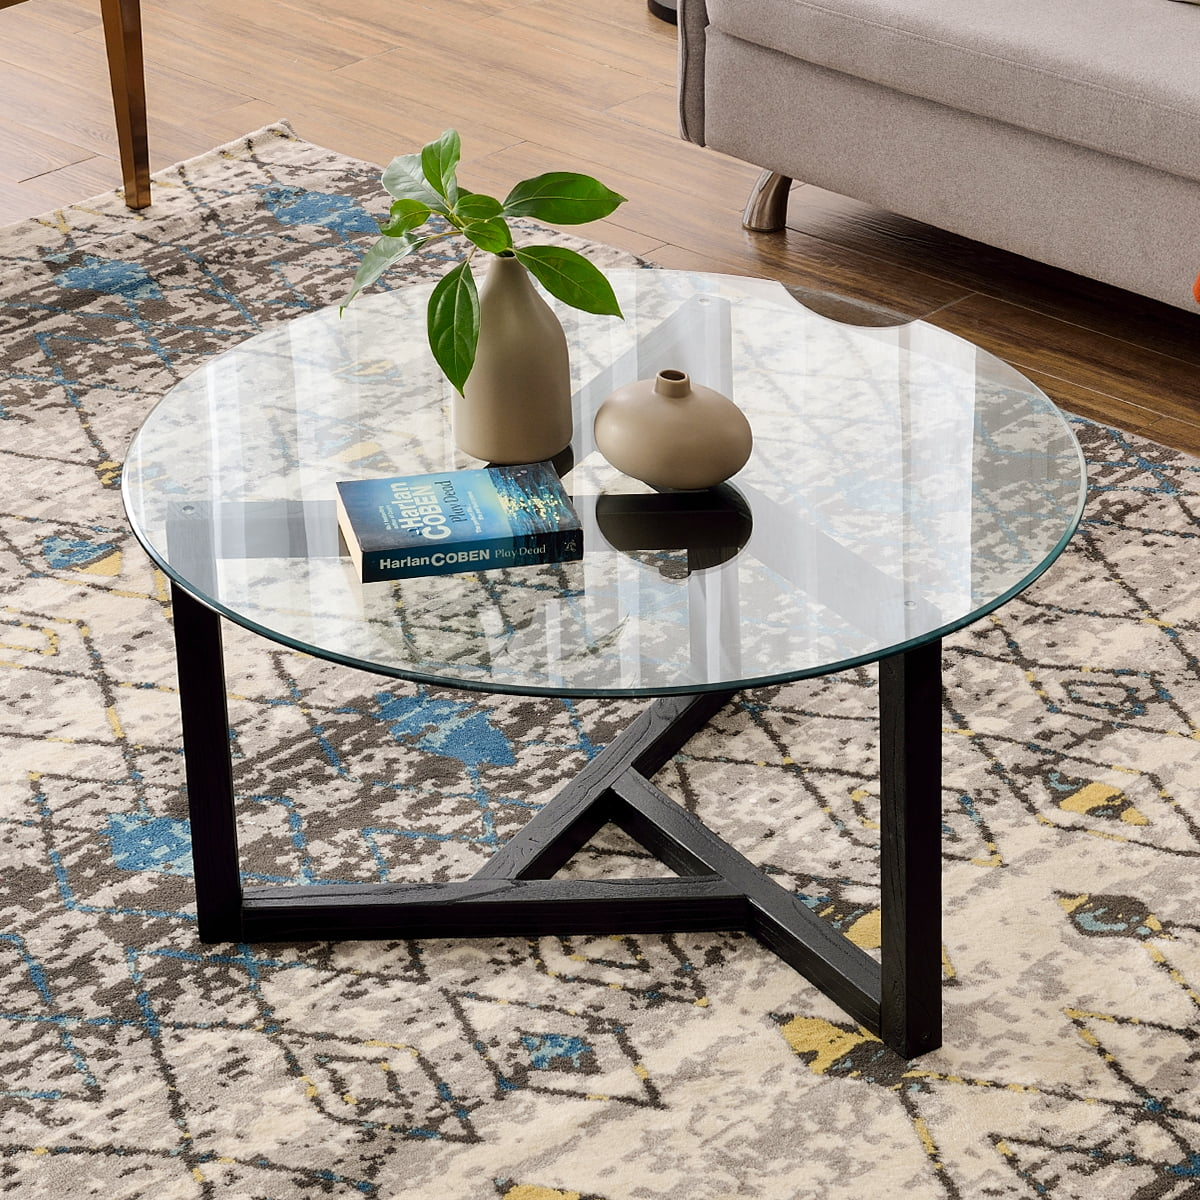 glass coffee table 35 4 round coffee table with sturdy wood base modern cocktail table with tempered glass top round center table sofa table for